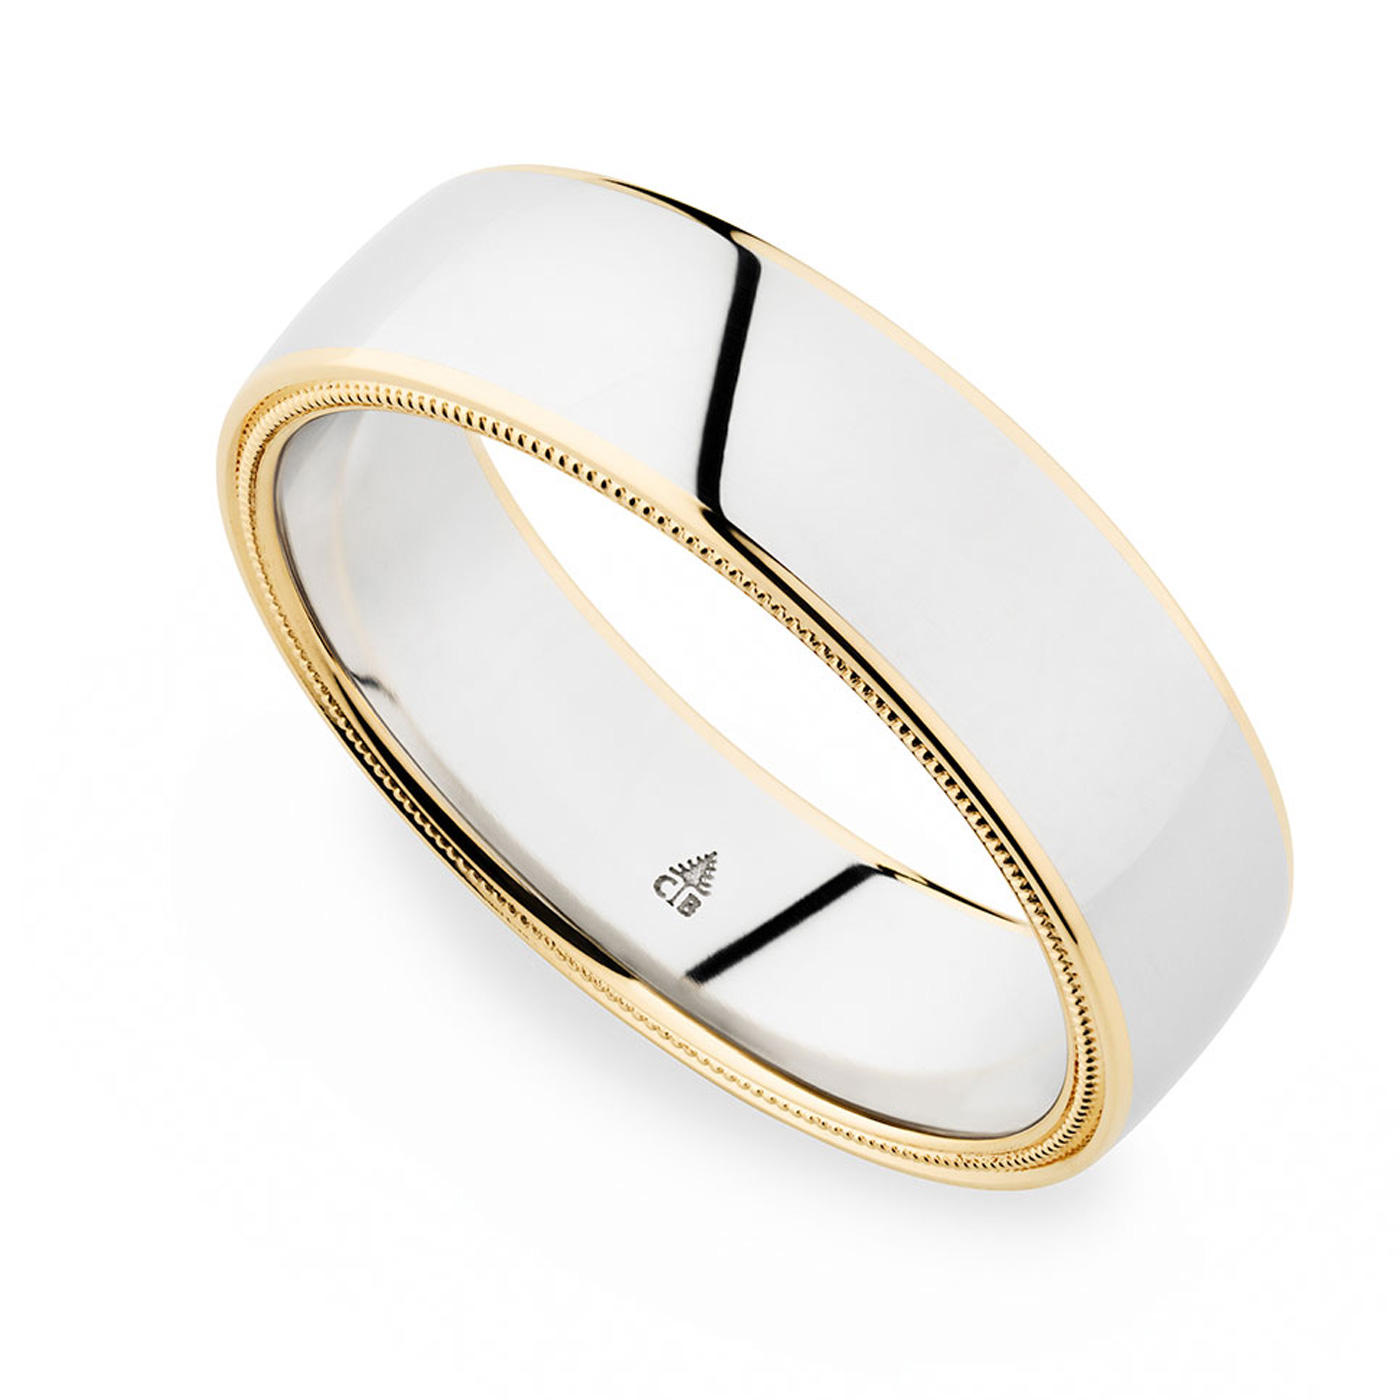 274441 christian bauer palladium 18 karat wedding ring for Christian bauer wedding rings